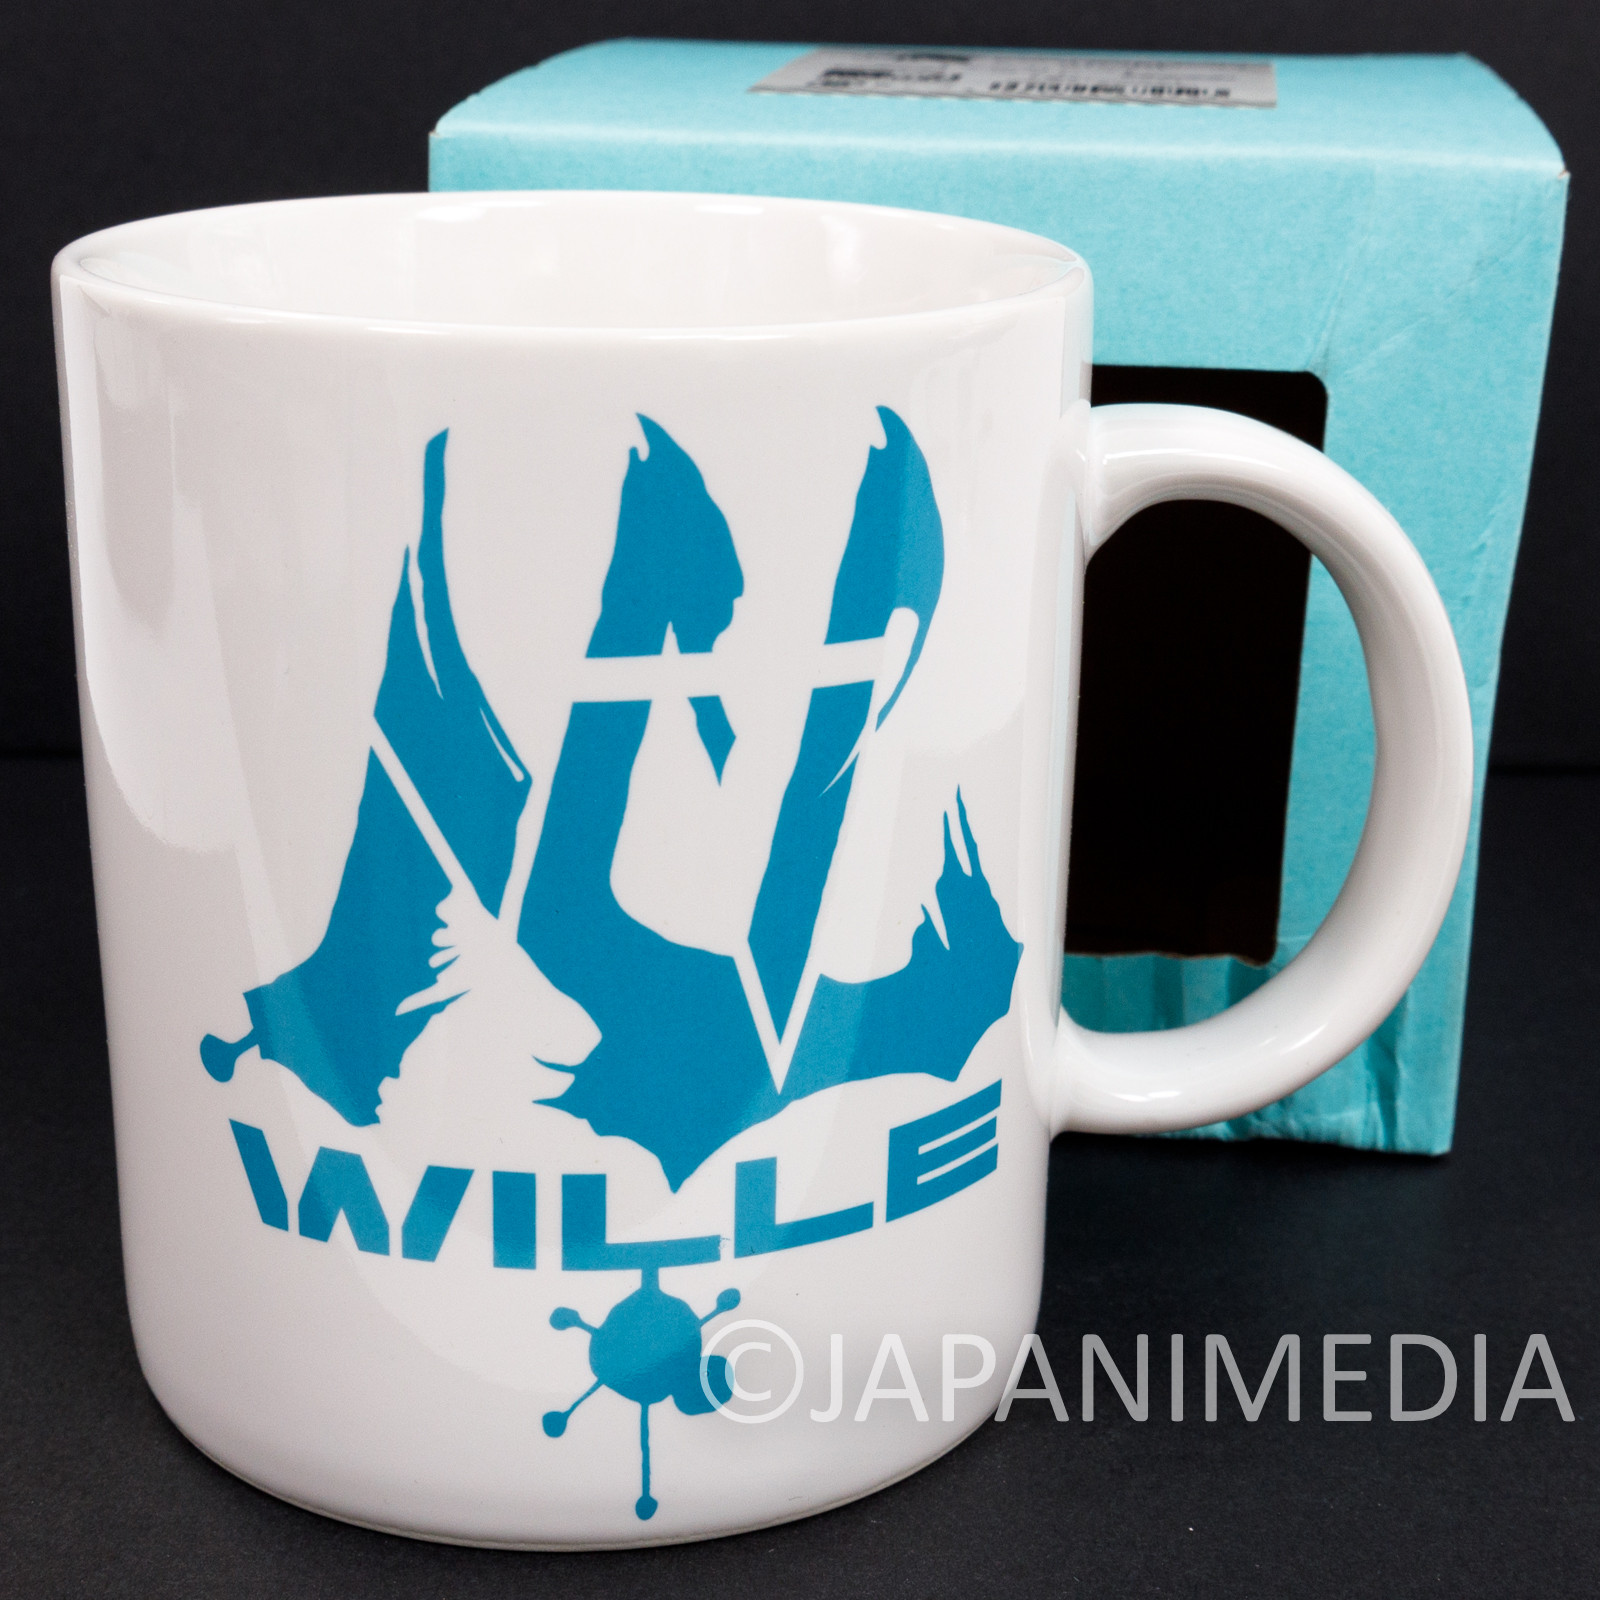 Evangelion WILLE Logo Mark Mug JAPAN ANIME MANGA